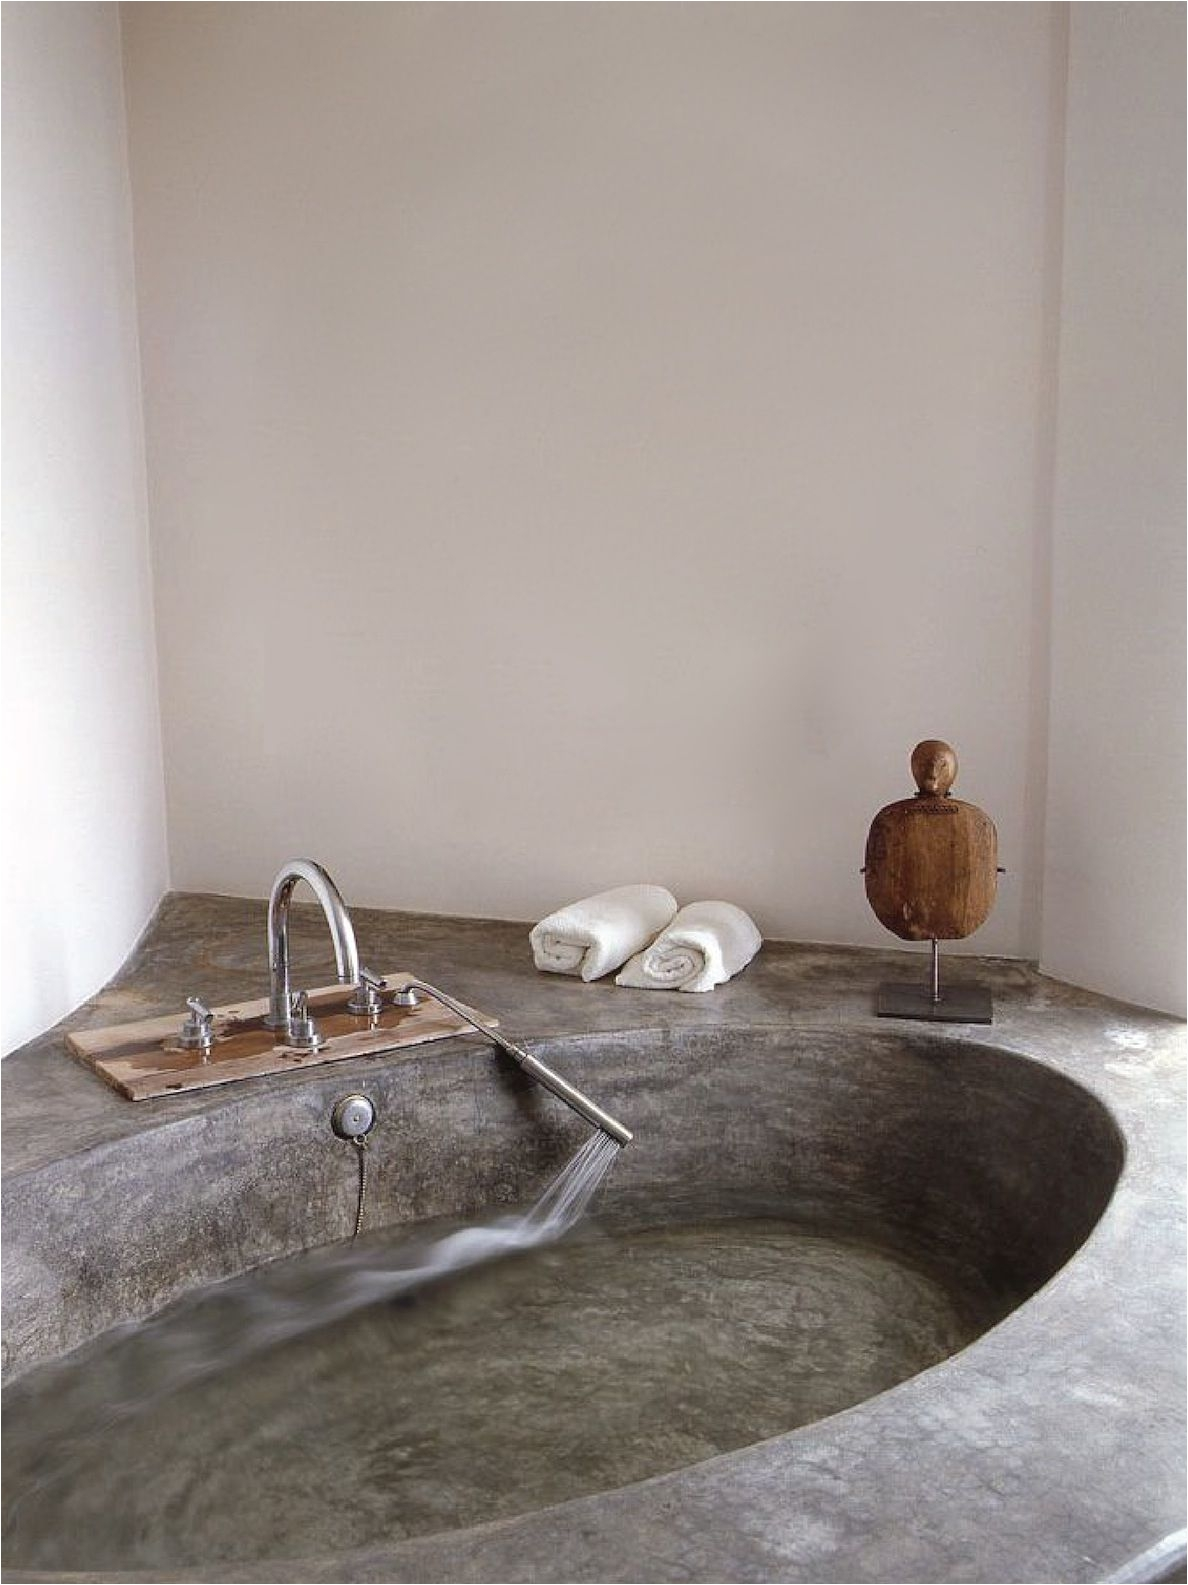 give mom the gift of relaxation with this concrete spa bath mothersday intermountainconcretespecialties